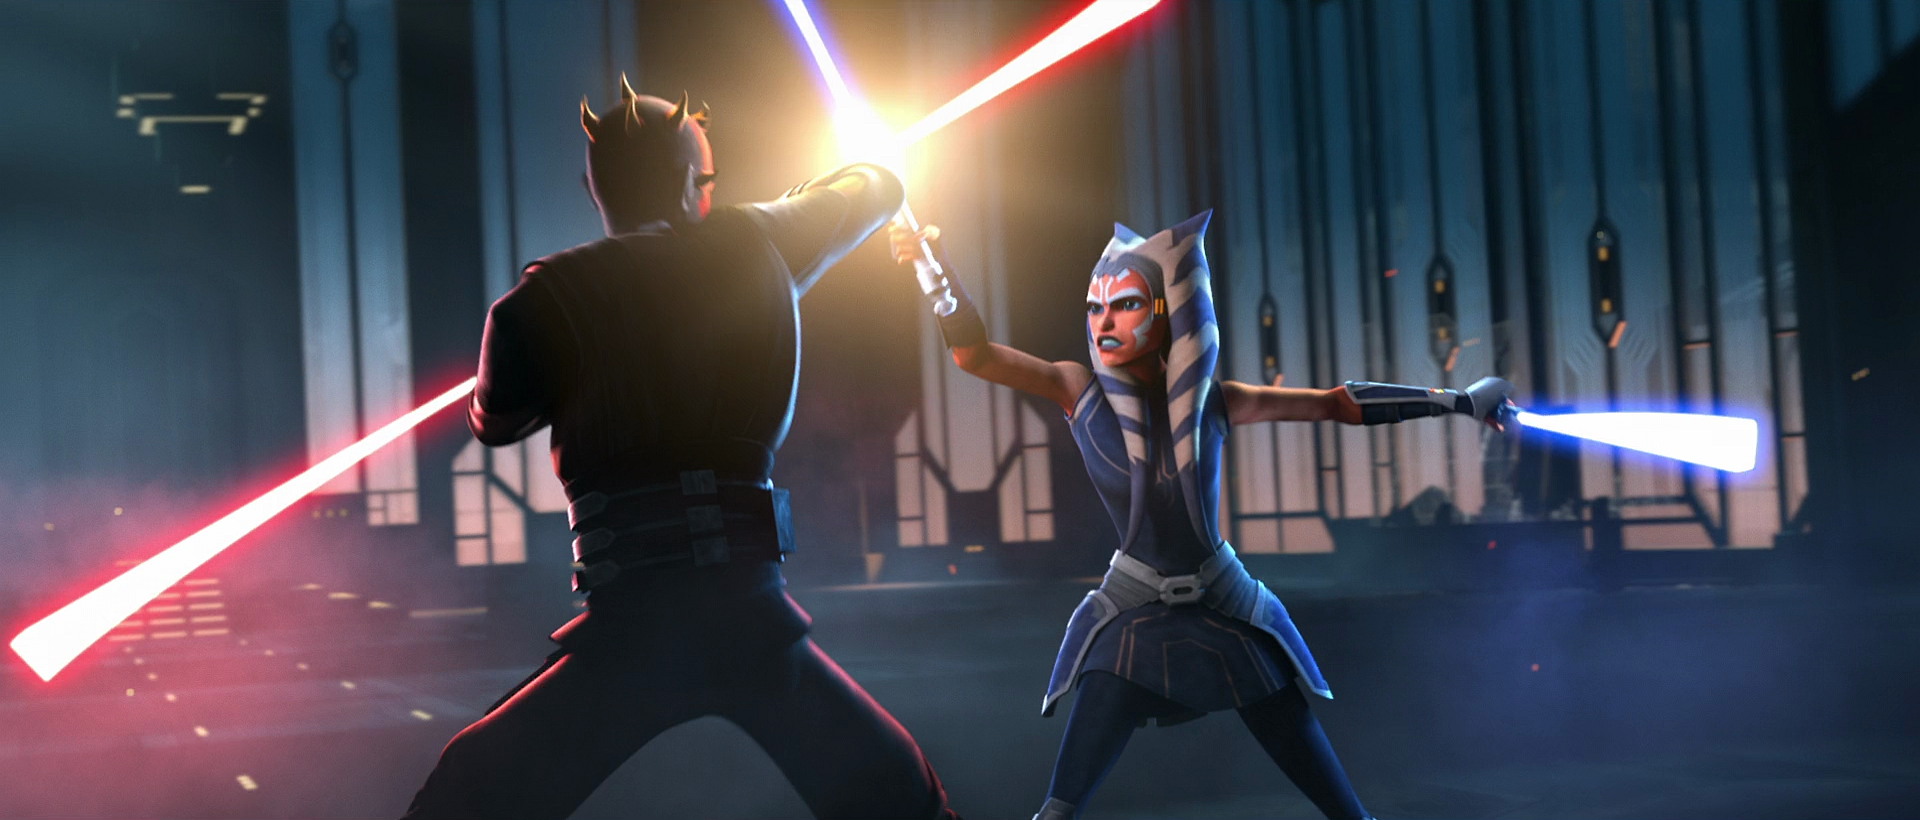 Ahsoka Tano Lightsaber Battle in The Mandalorian